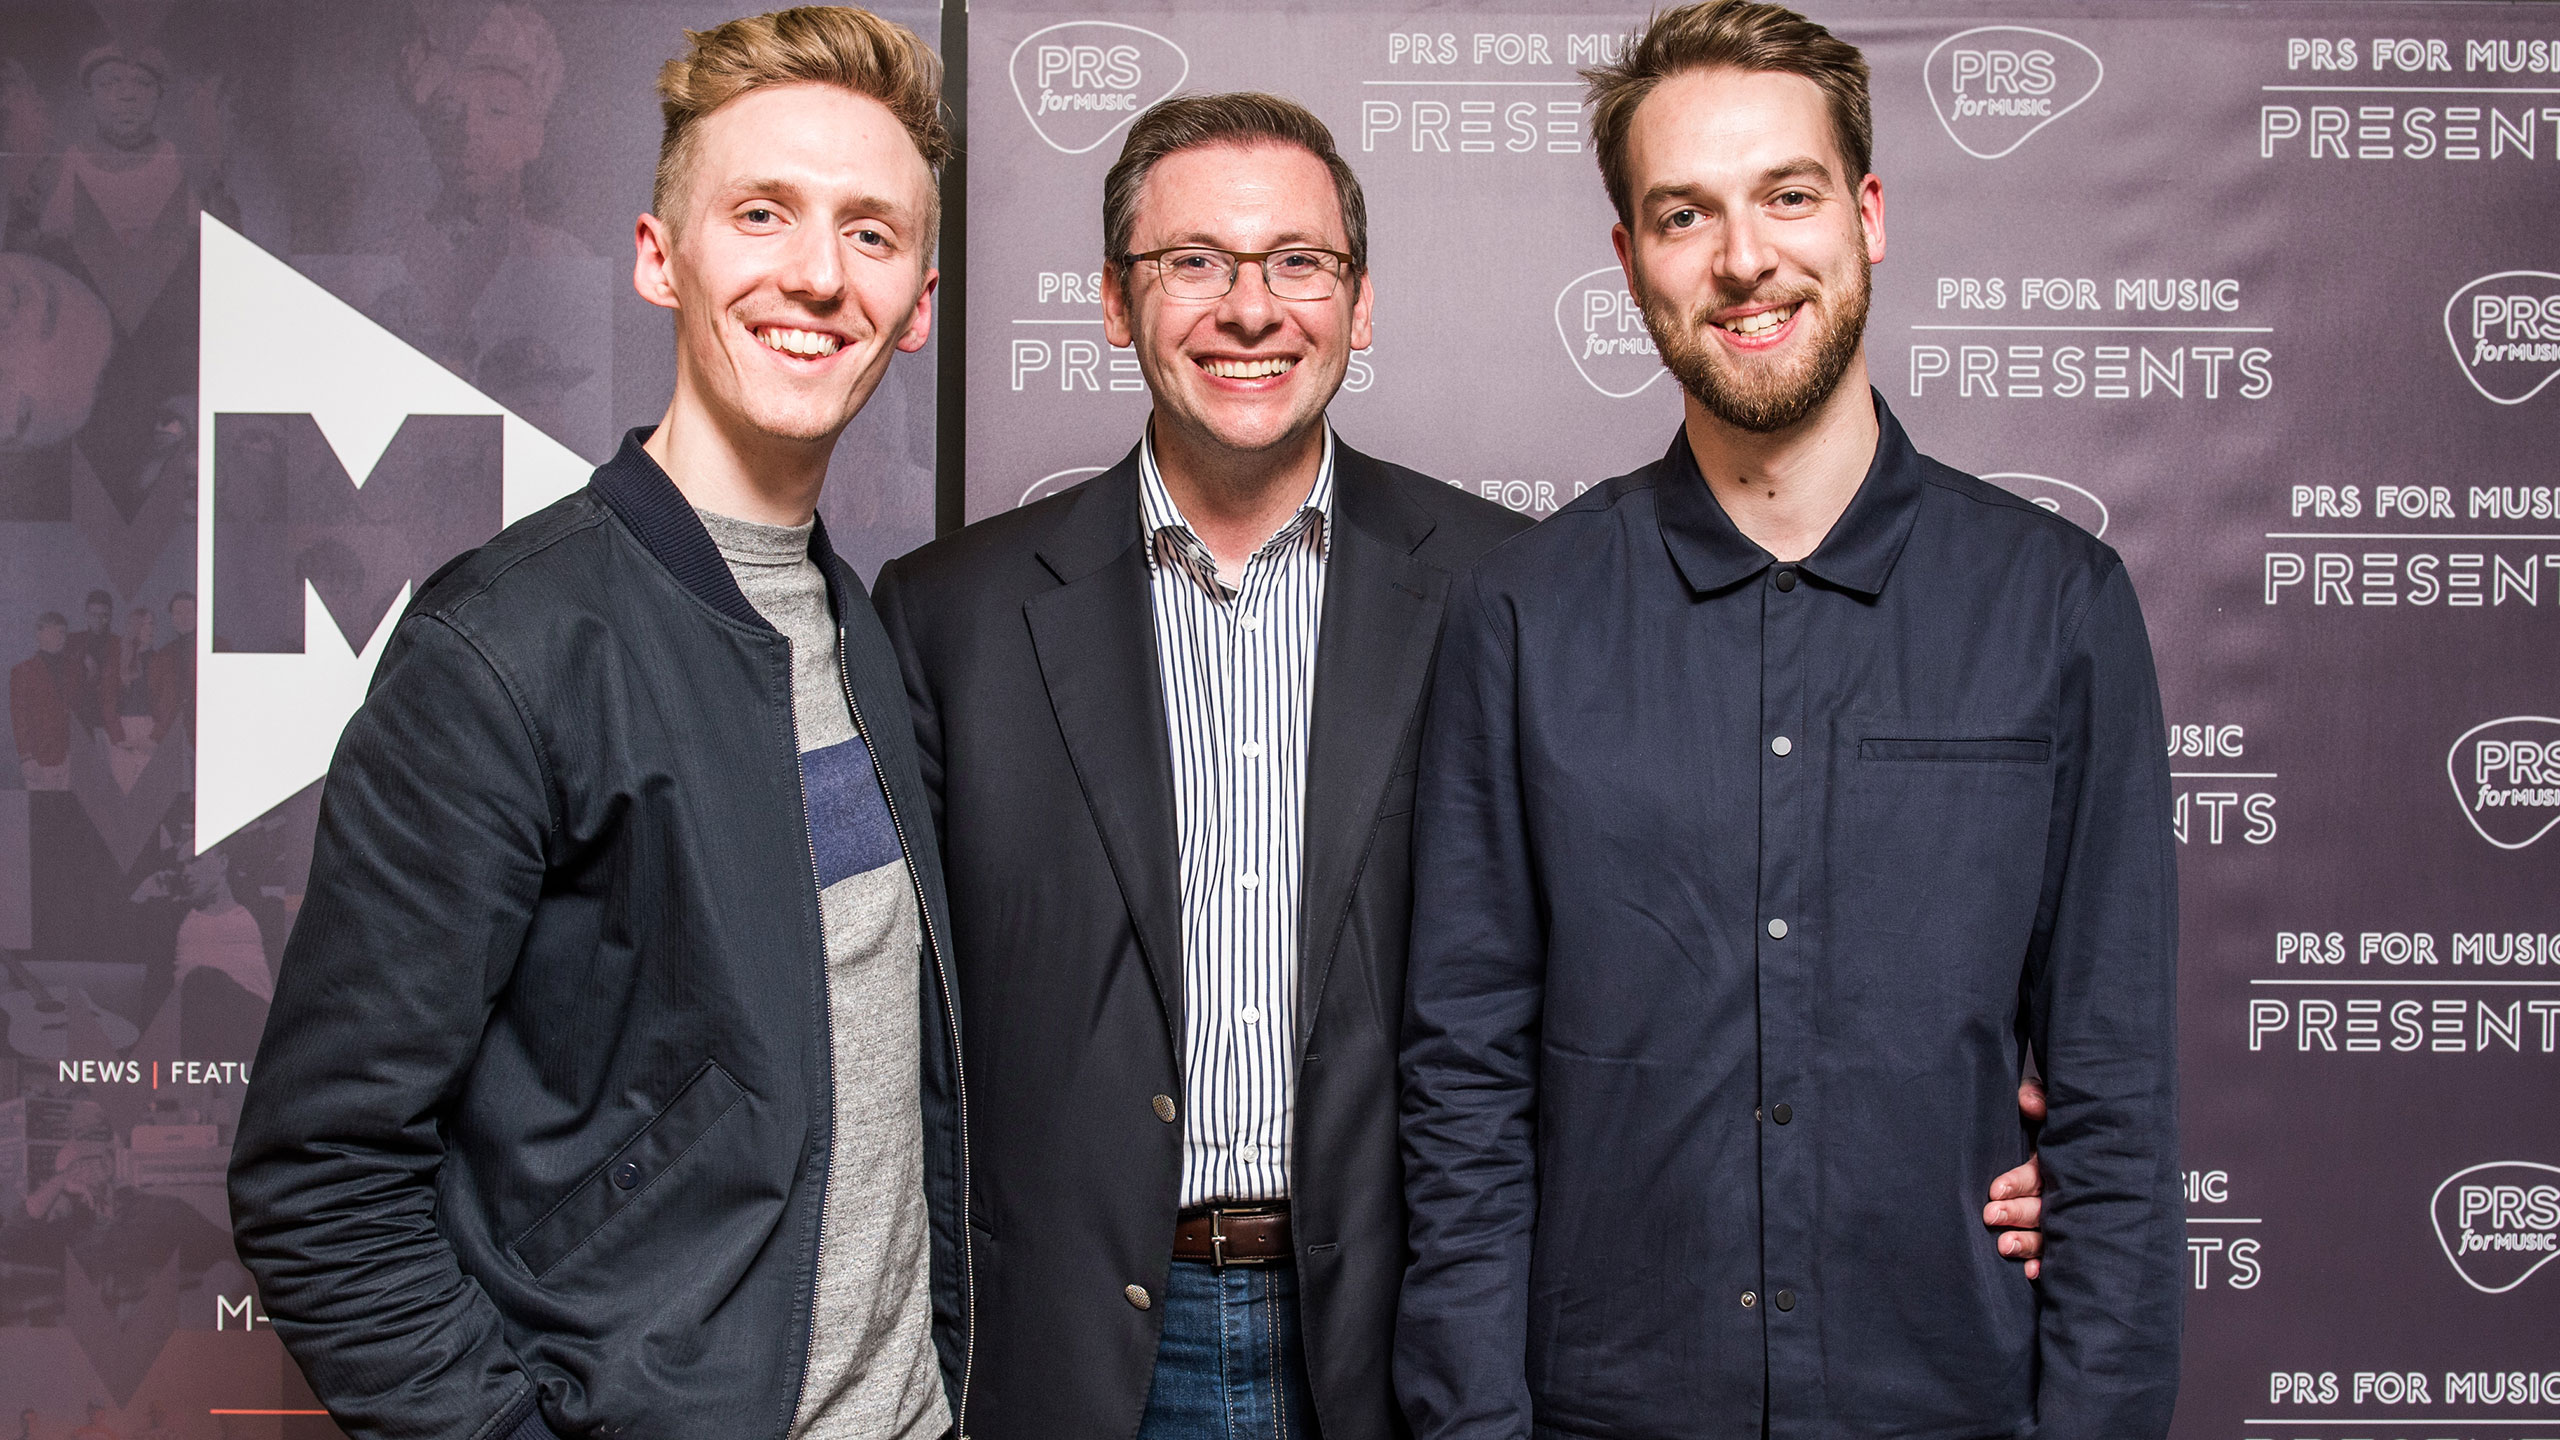 James Hatcher (Honne), Paul Clements (executive director of membership at PRS for Music) and Andy Clutterbuck (Honne) at PRS Presents